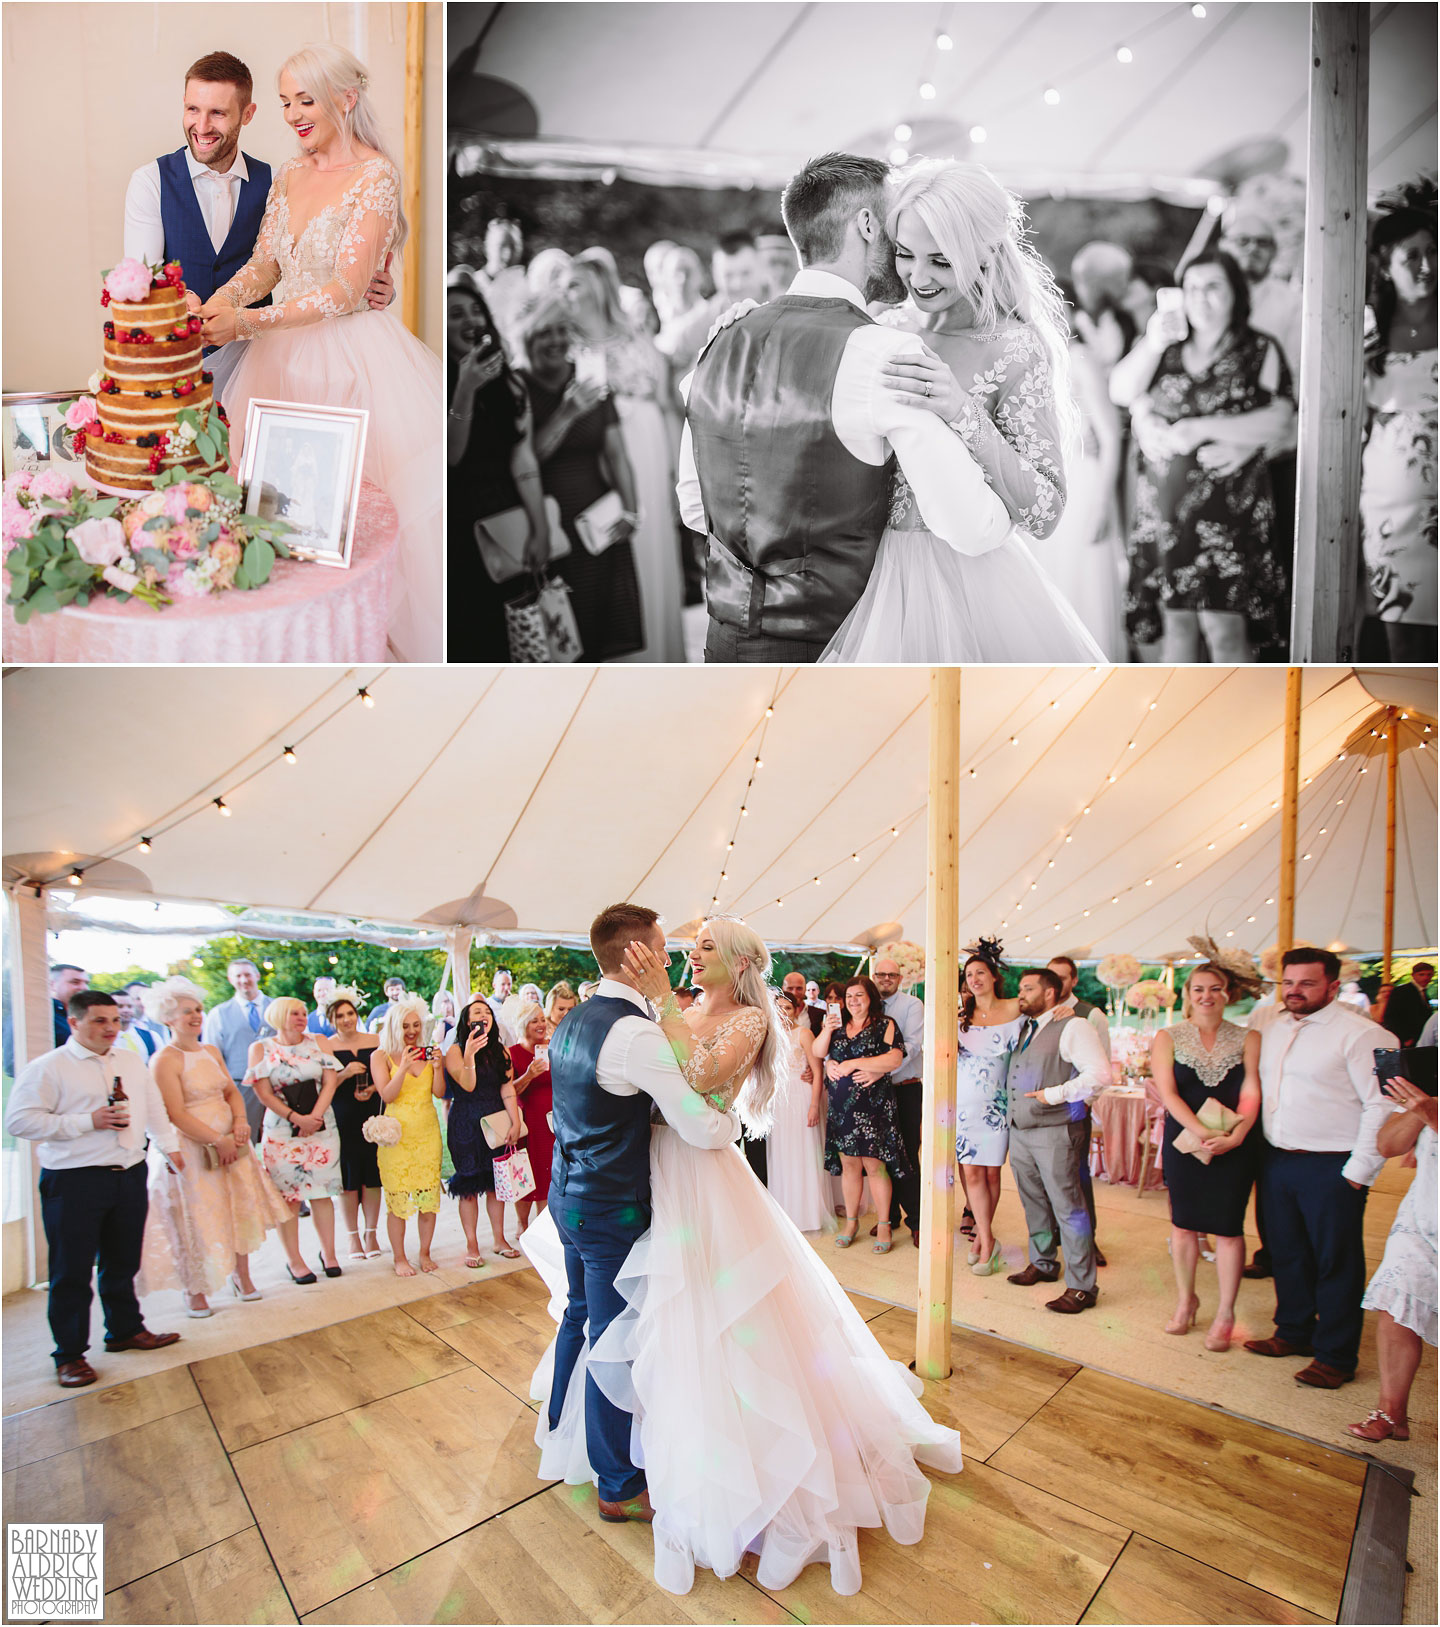 PapaKata Sperry Tent first dance at Saltmarshe Hall, Wedding photography at Saltmarshe Hall, East Yorkshire Wedding Photos